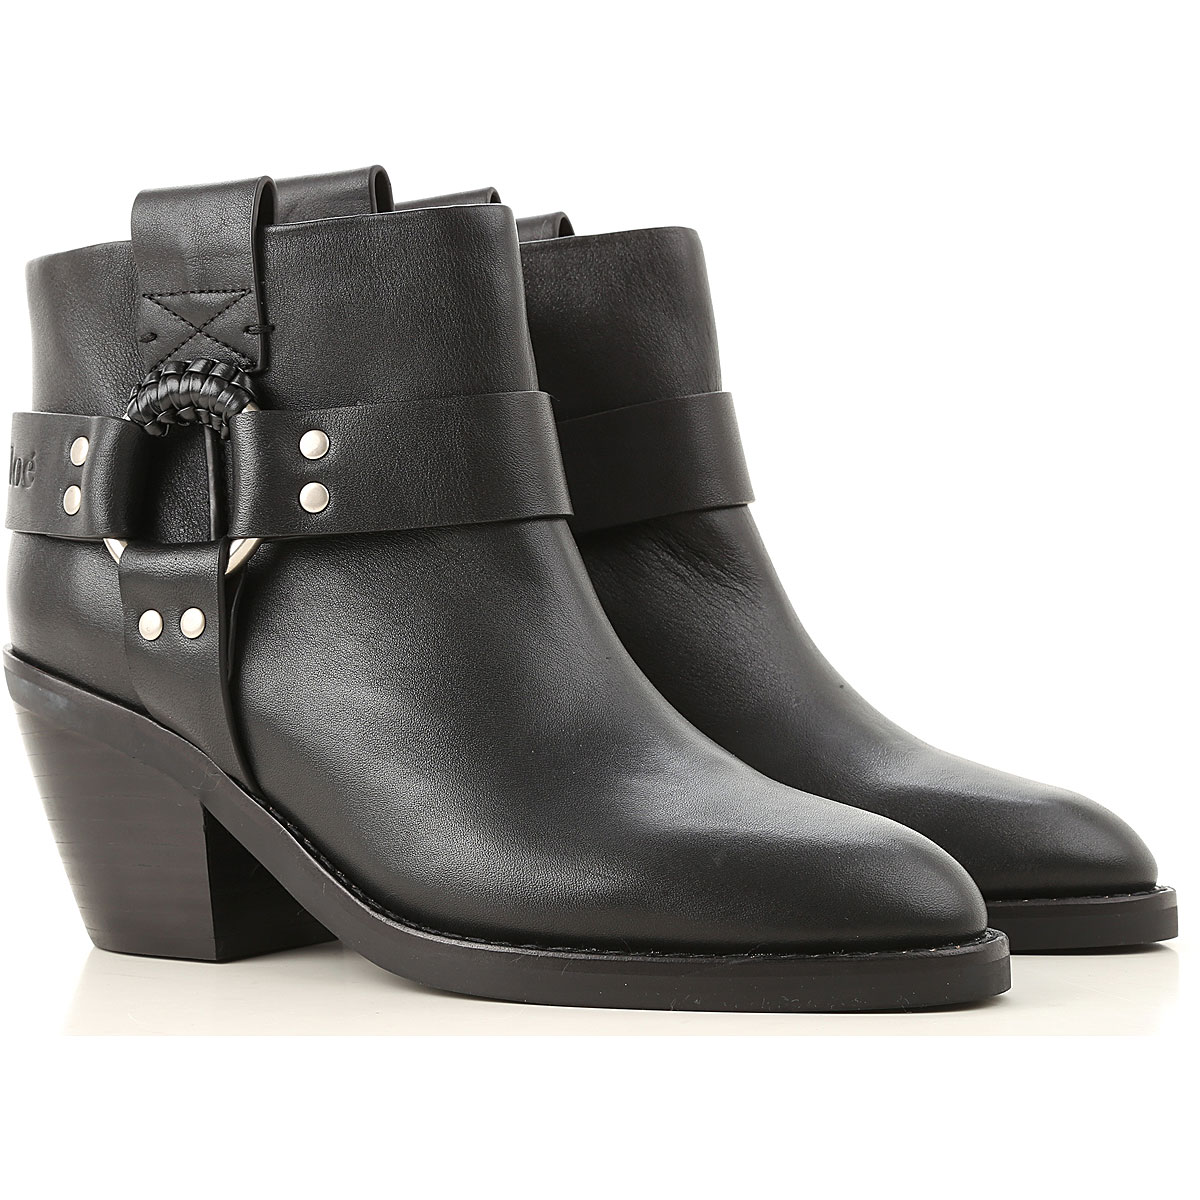 See By Chloe Boots for Women, Booties On Sale, Black, Leather, 2019, 10 11 6 6.5 7 8 8.5 9